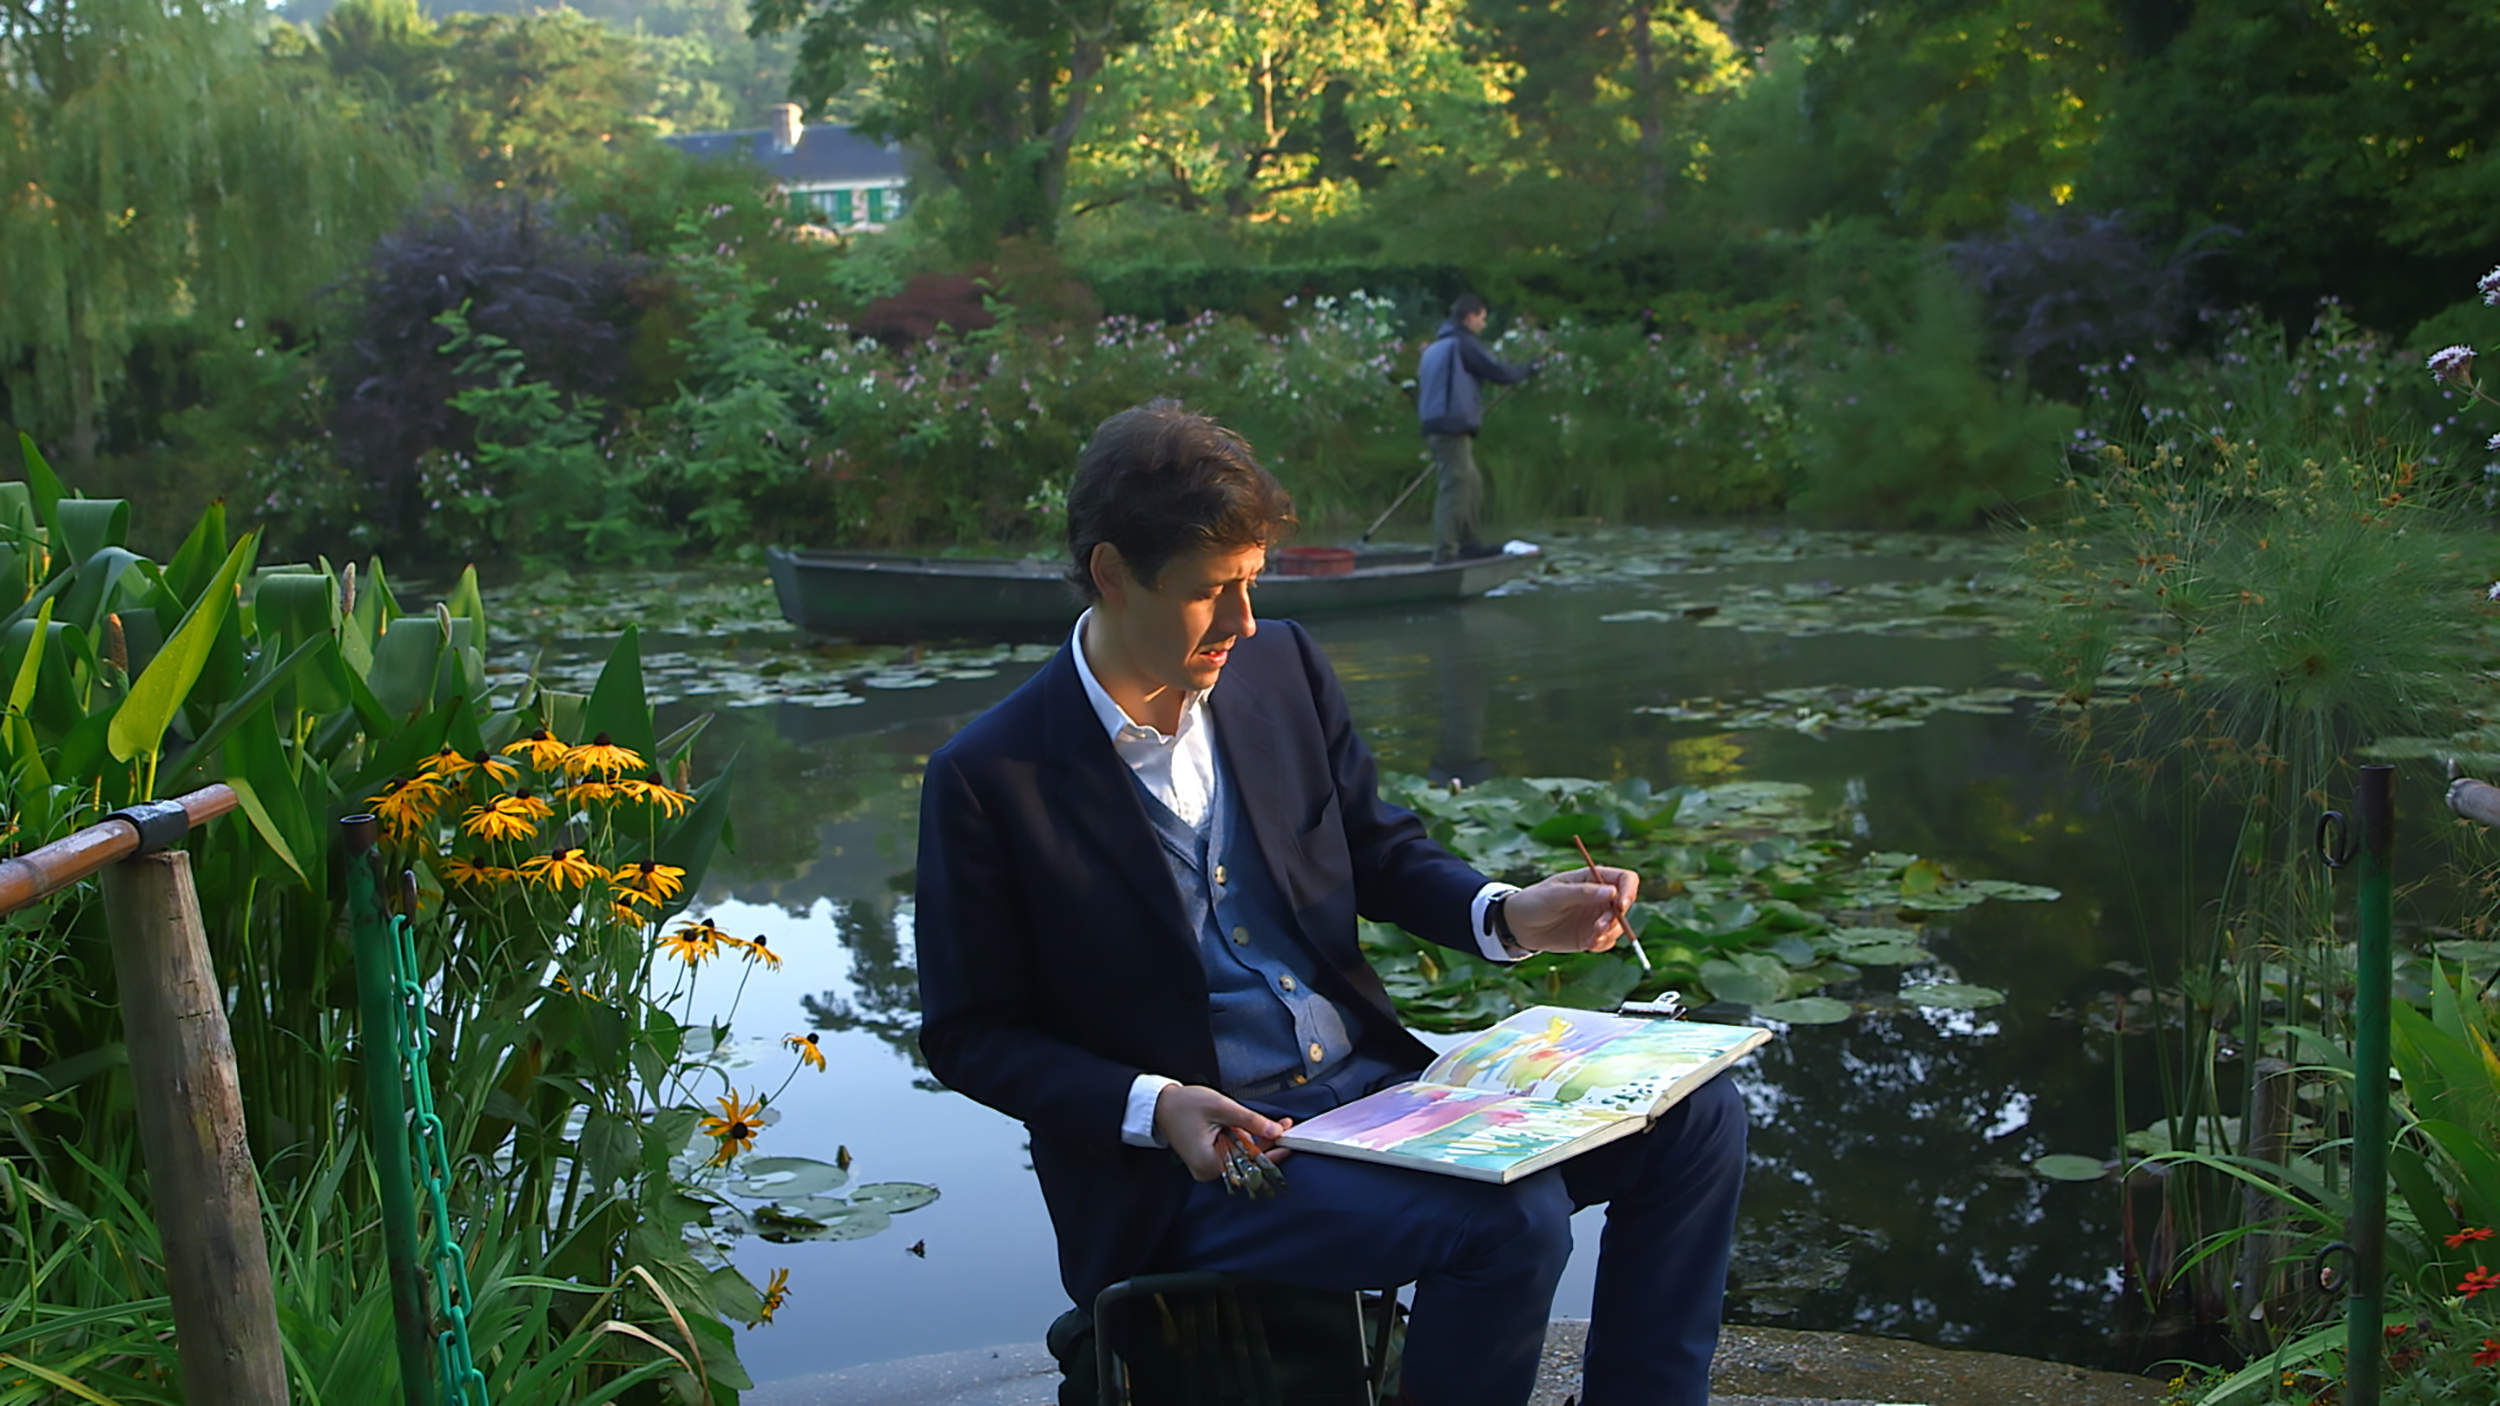 Caption: Painting The Modern Garden, Credit: David Bickerstaff